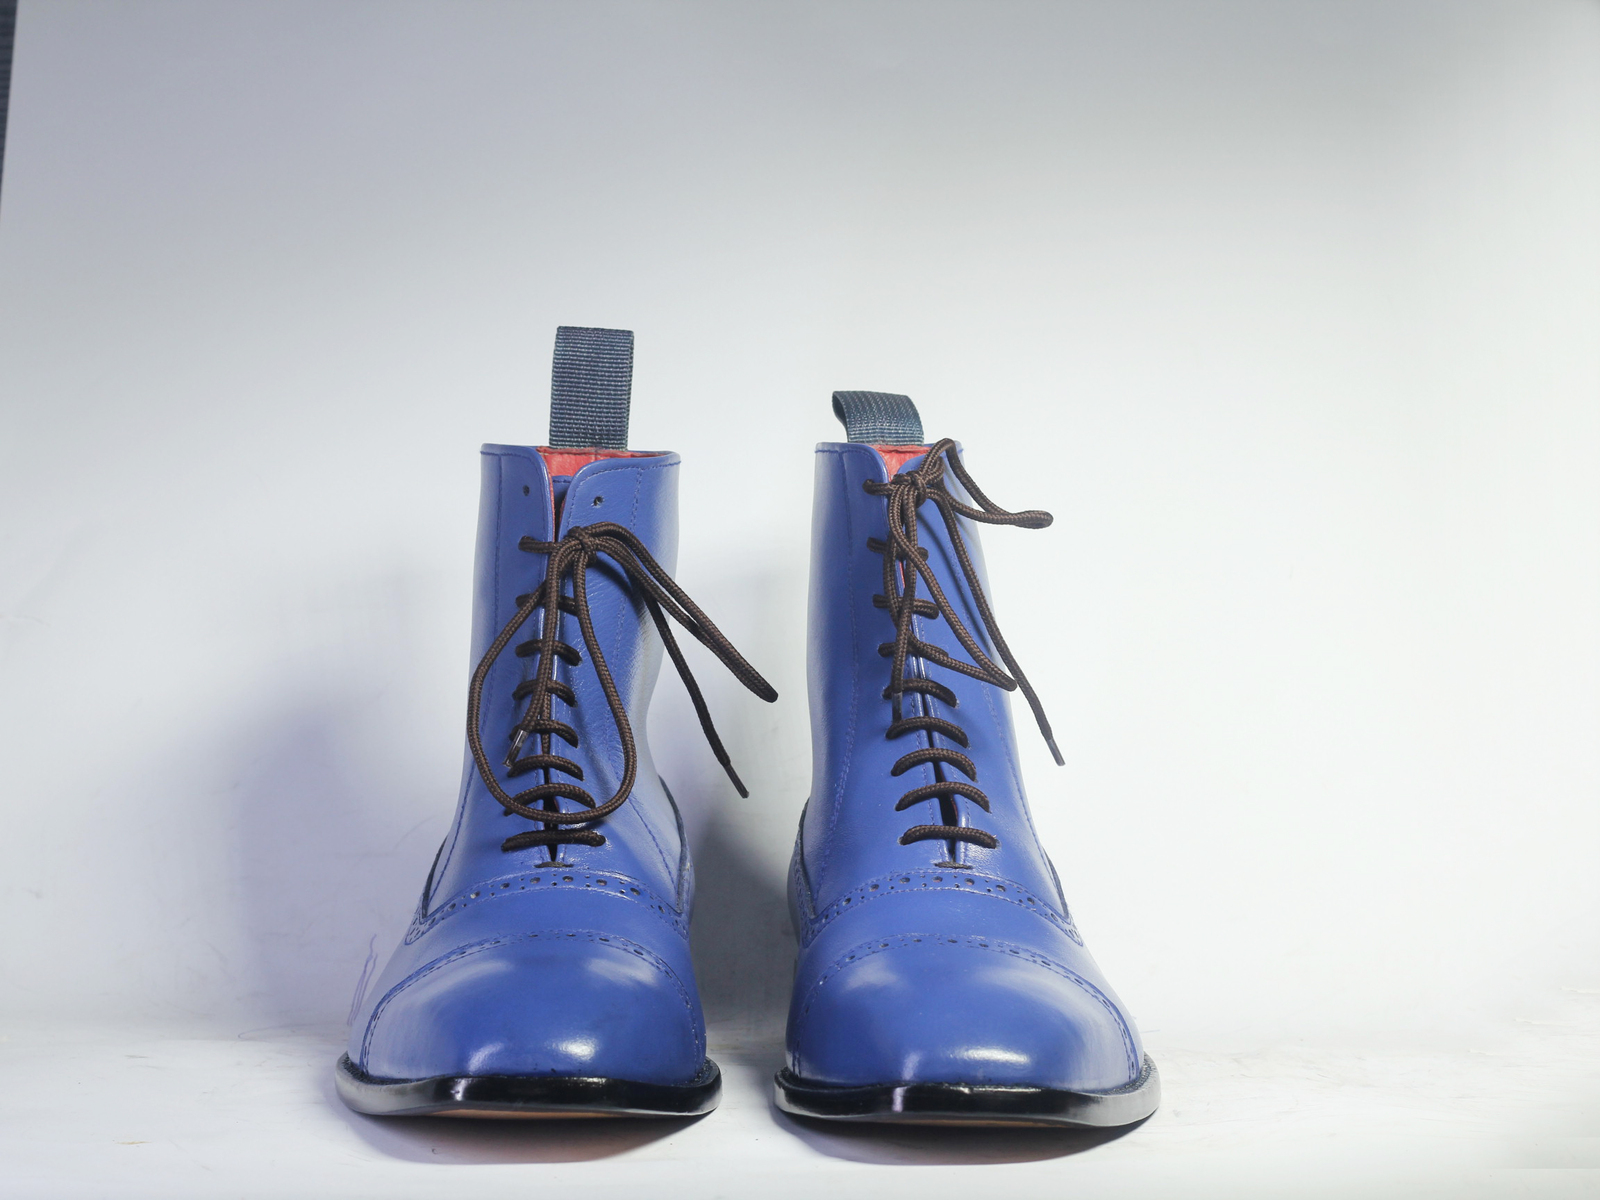 Handmade Men's Blue Two Tone High Ankle Lace Up Dress/Formal Leather Boots